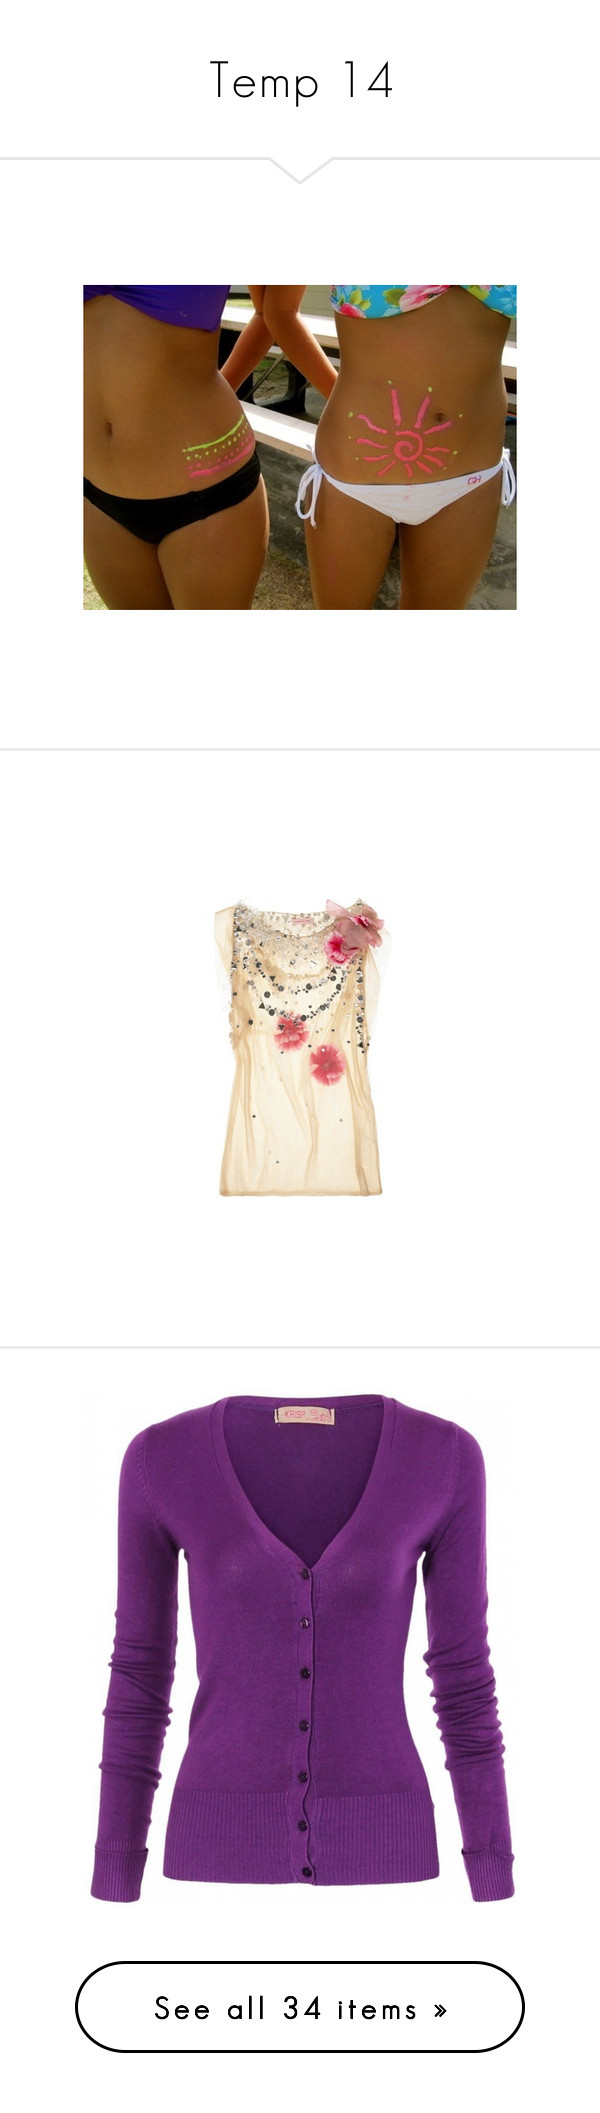 """Temp 14"" by katiemarilexa ❤ liked on Polyvore featuring best friends, girls, tops, tulle top, tan top, embellished sleeveless tops, layered tops, embroidered top, cardigans and shirts"